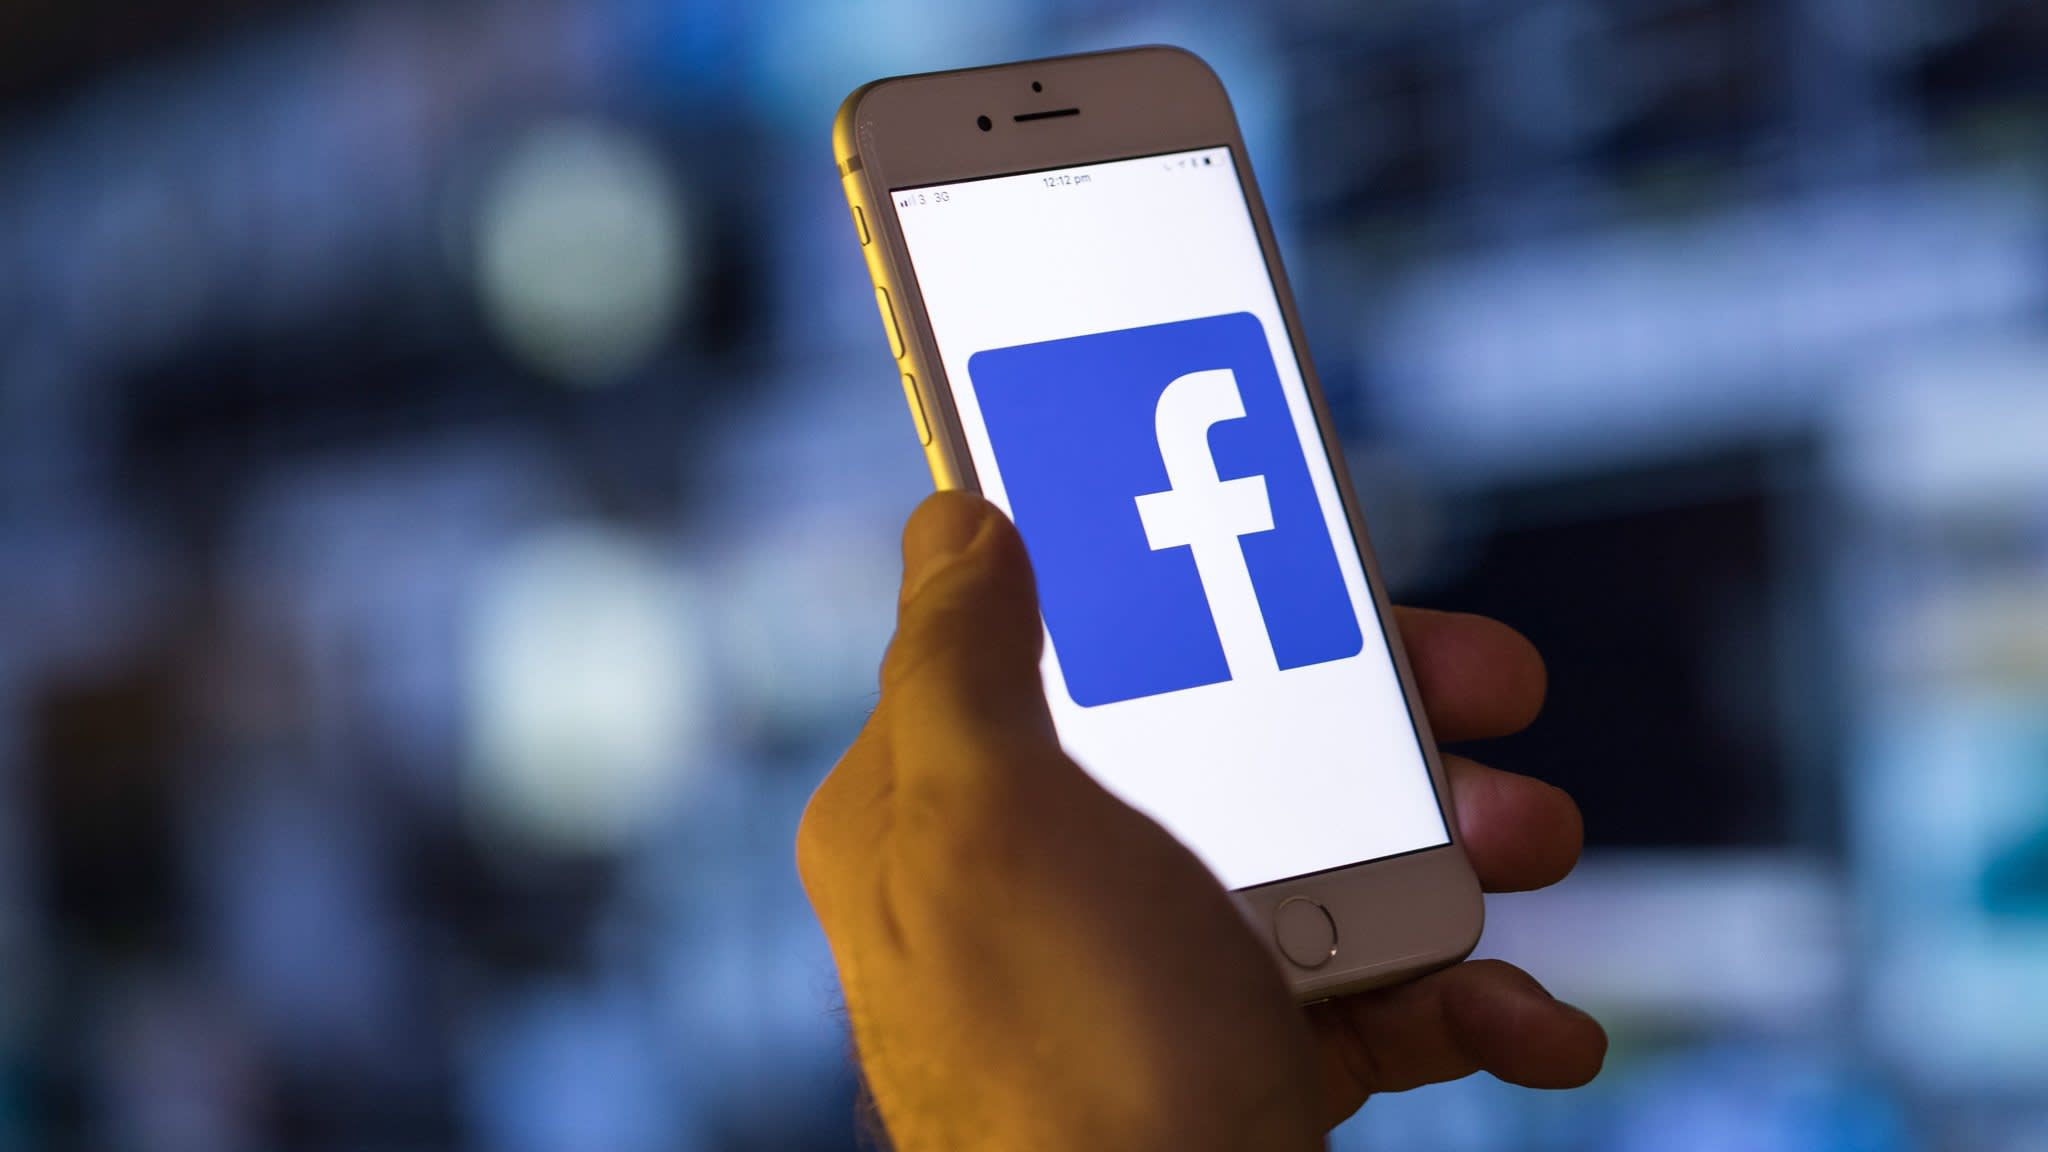 Facebook to build $1bn Singapore data centre to power Asia growth